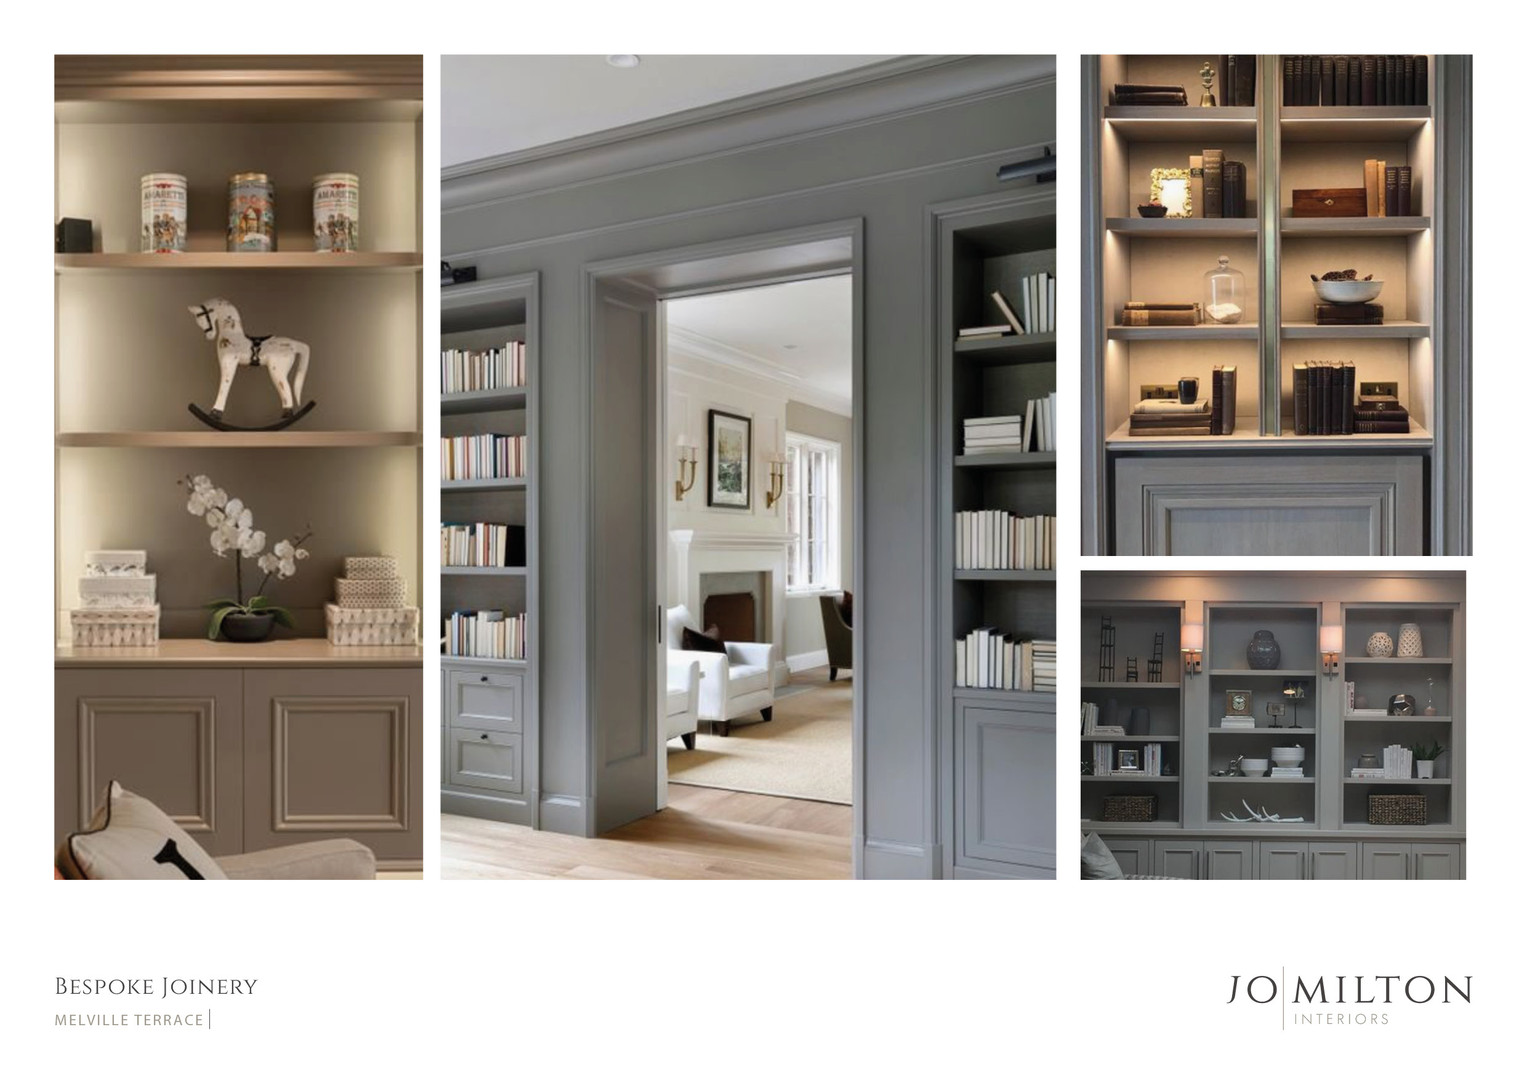 Dundee_Bespoke Joinery